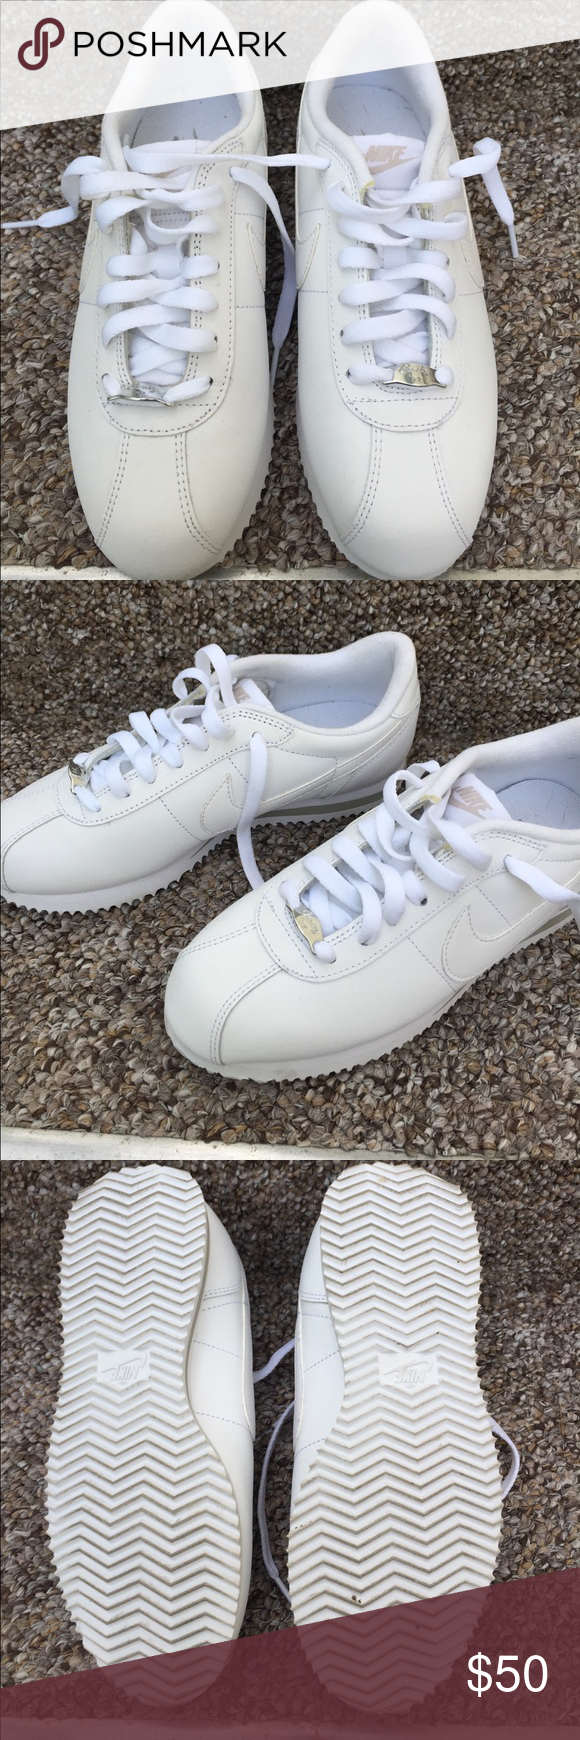 sale retailer b8894 cb7c2 Women's Nike Cortez White Size 6.5 These shoes have been ...